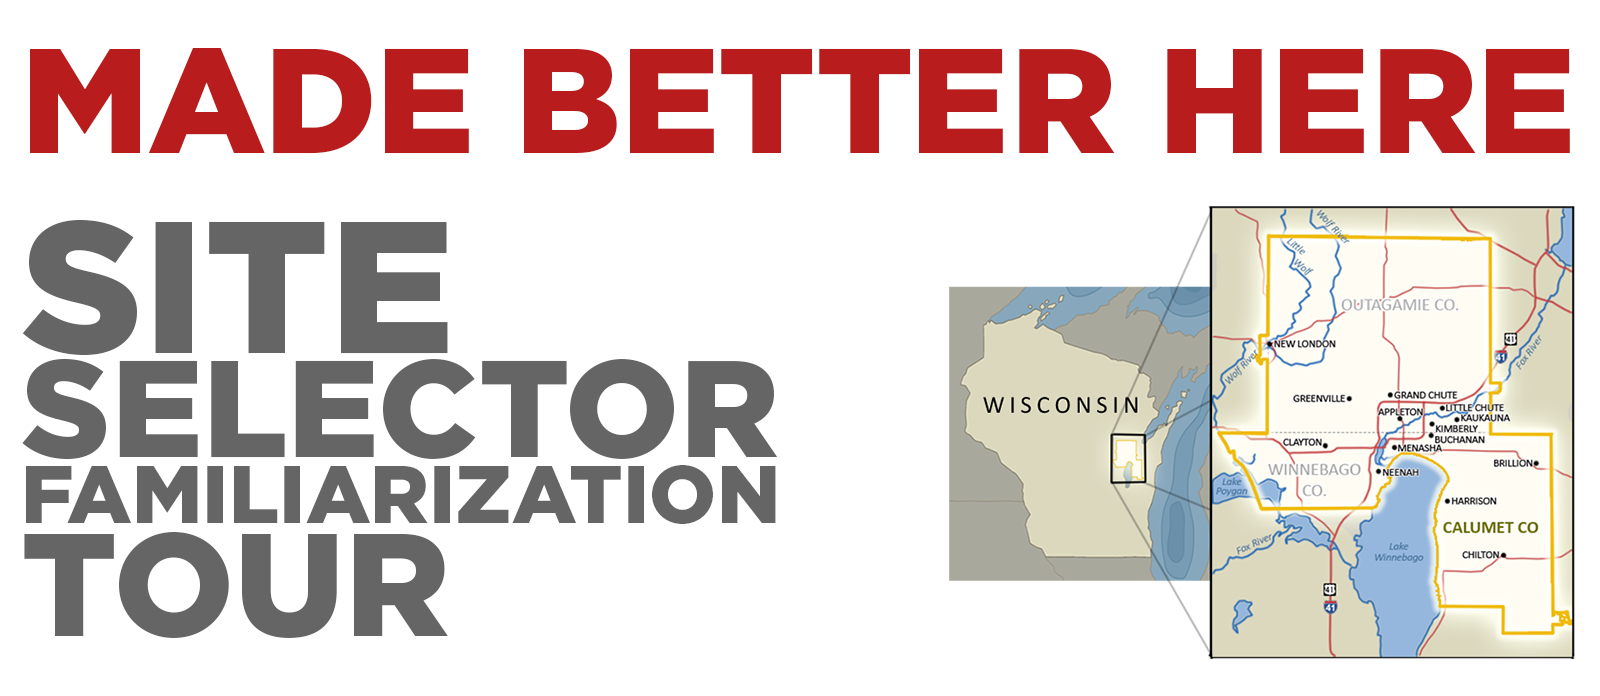 PRESS RELEASE: FOX CITIES REGIONAL PARTNERSHIP TO HOST SITE SELECTORS AS KEY PIECE TO MARKETING OUTREACH